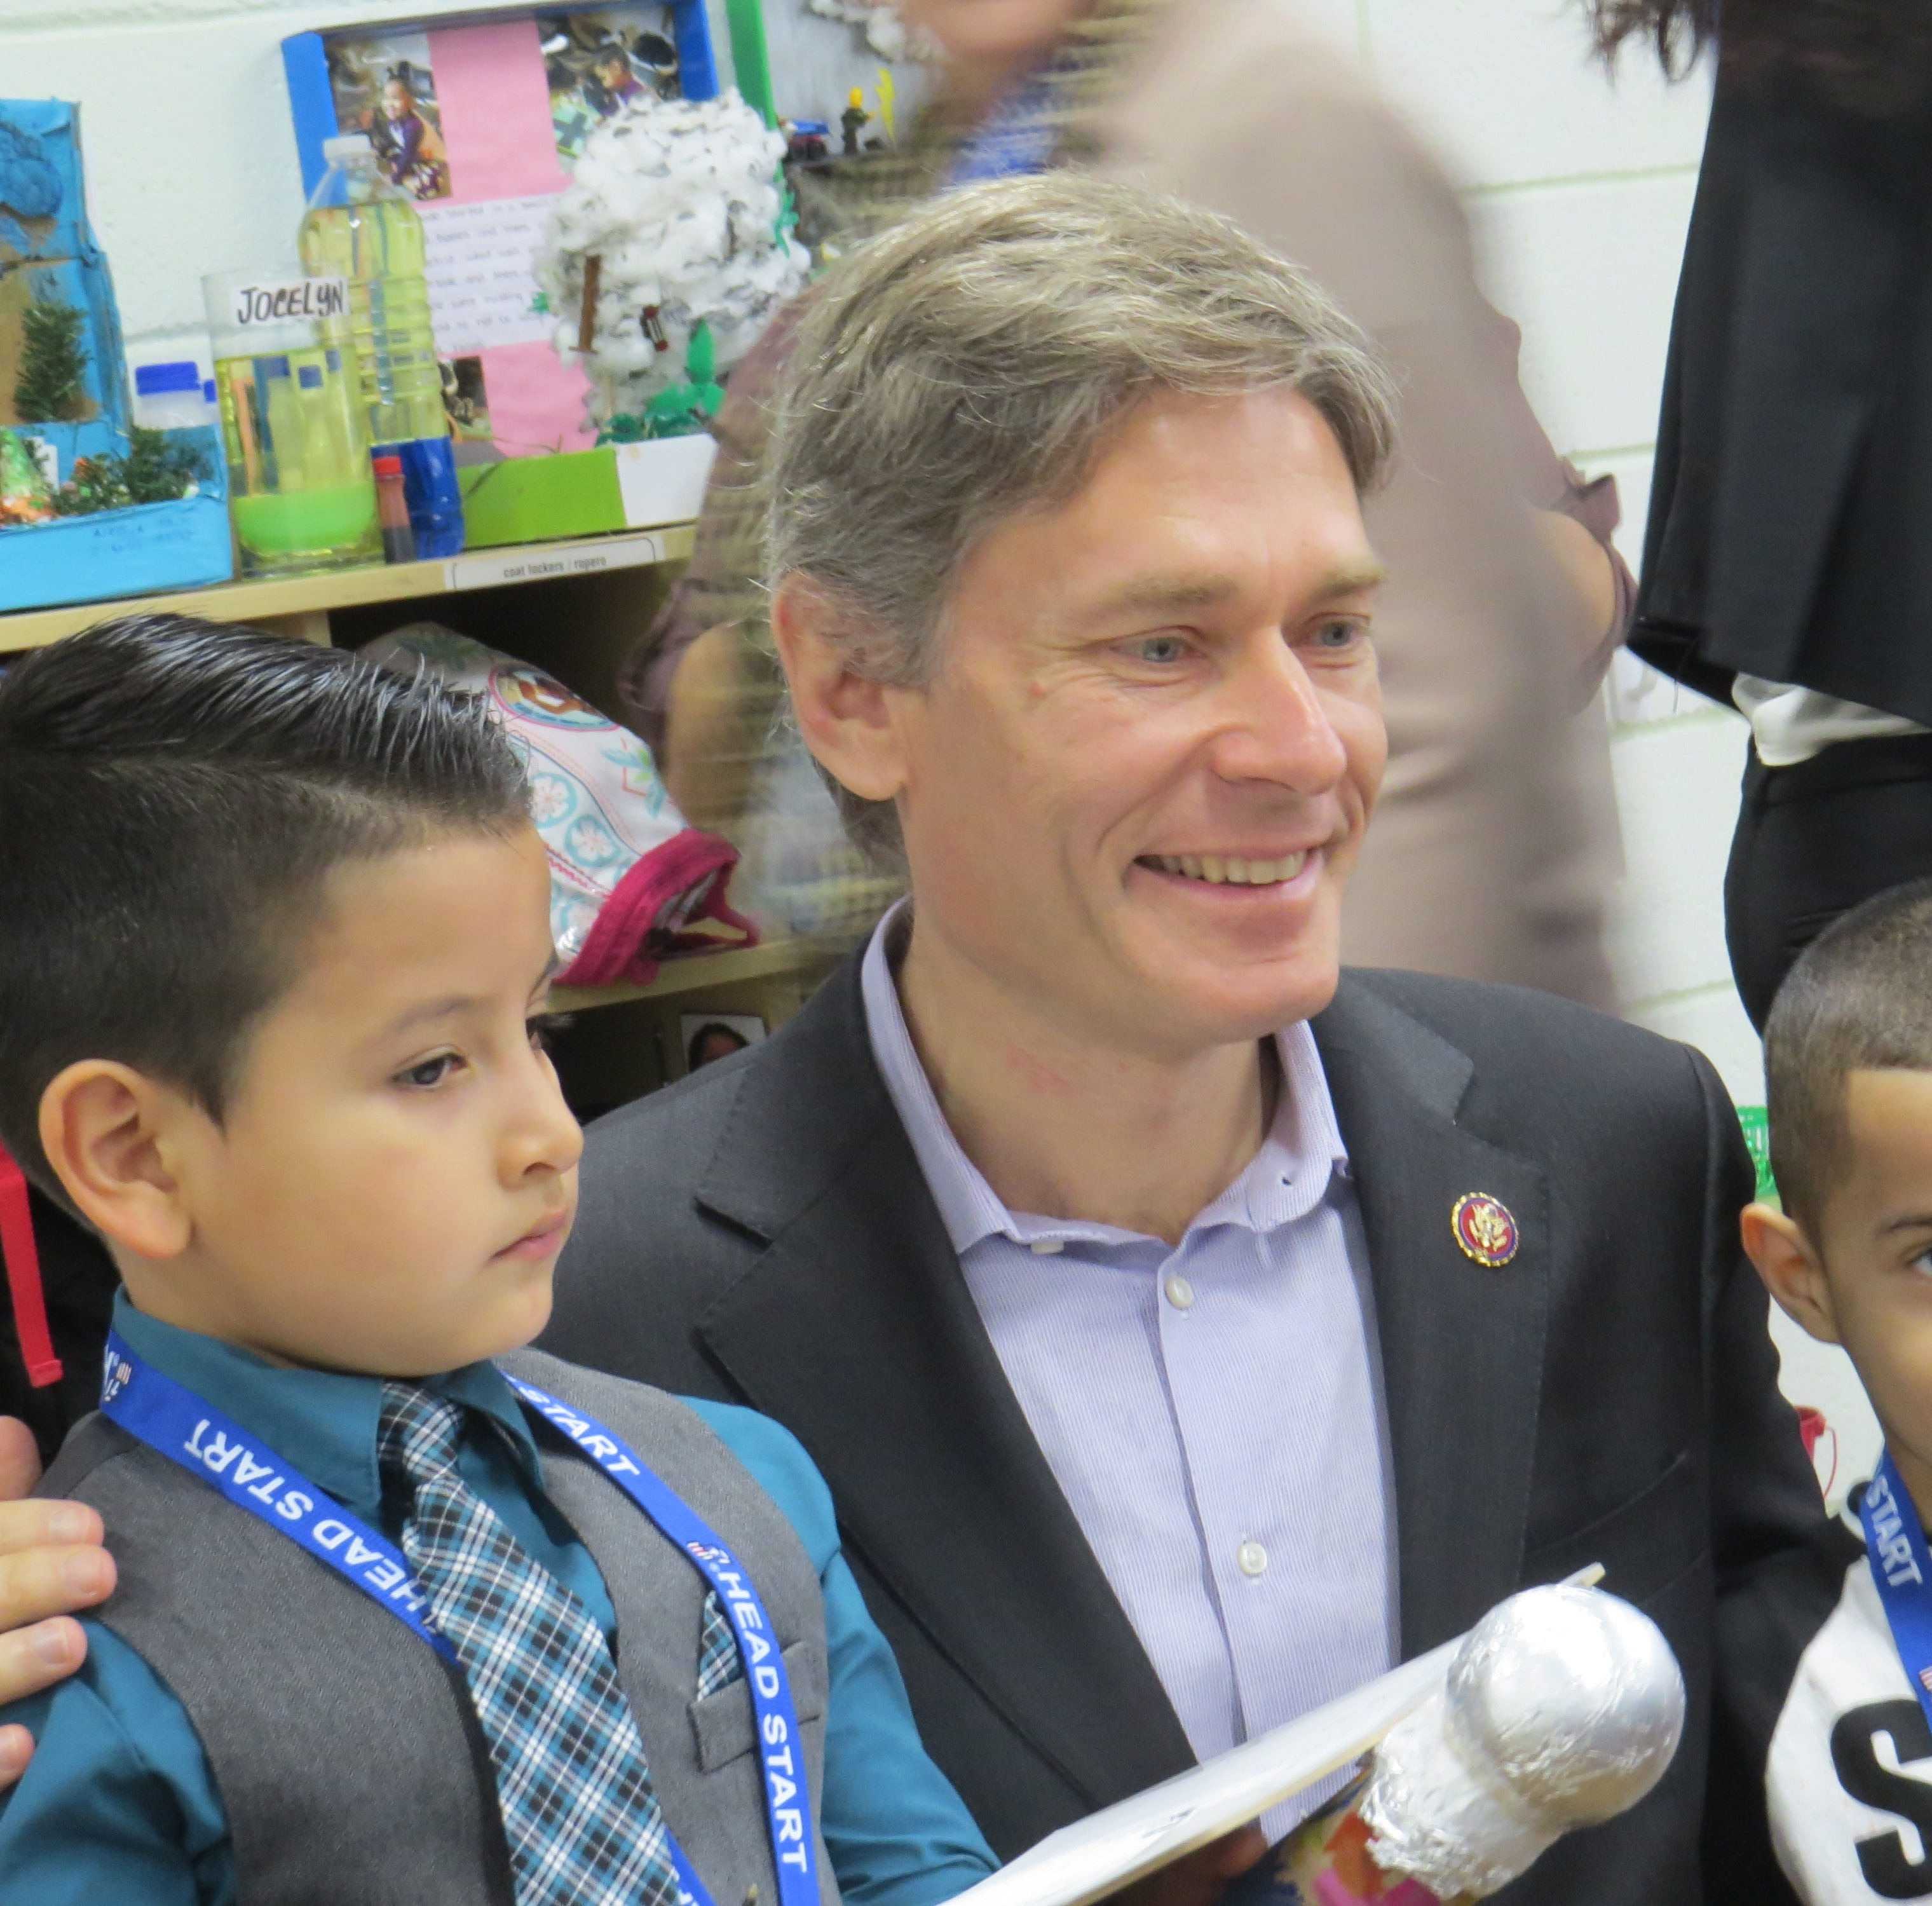 New congressman grilled by preschool 'journalists'